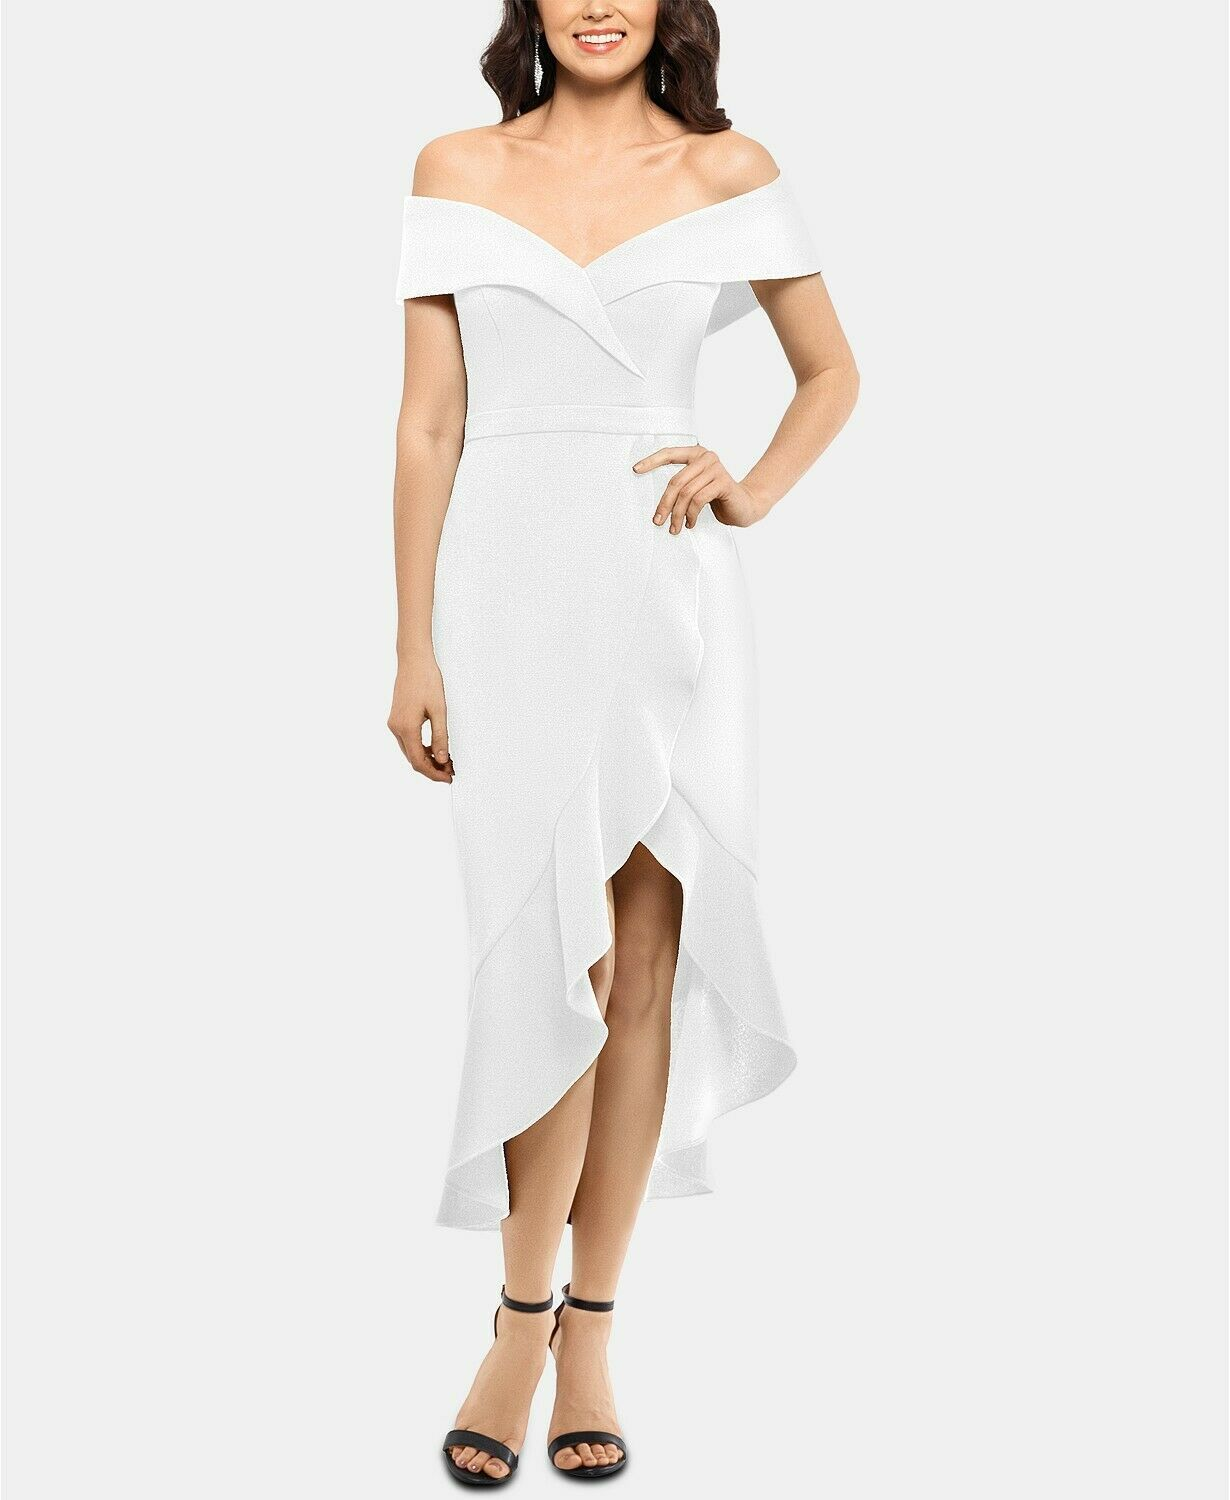 XSCAPE Off-The-Shoulder Midi Dress Ivory Size 8 $239